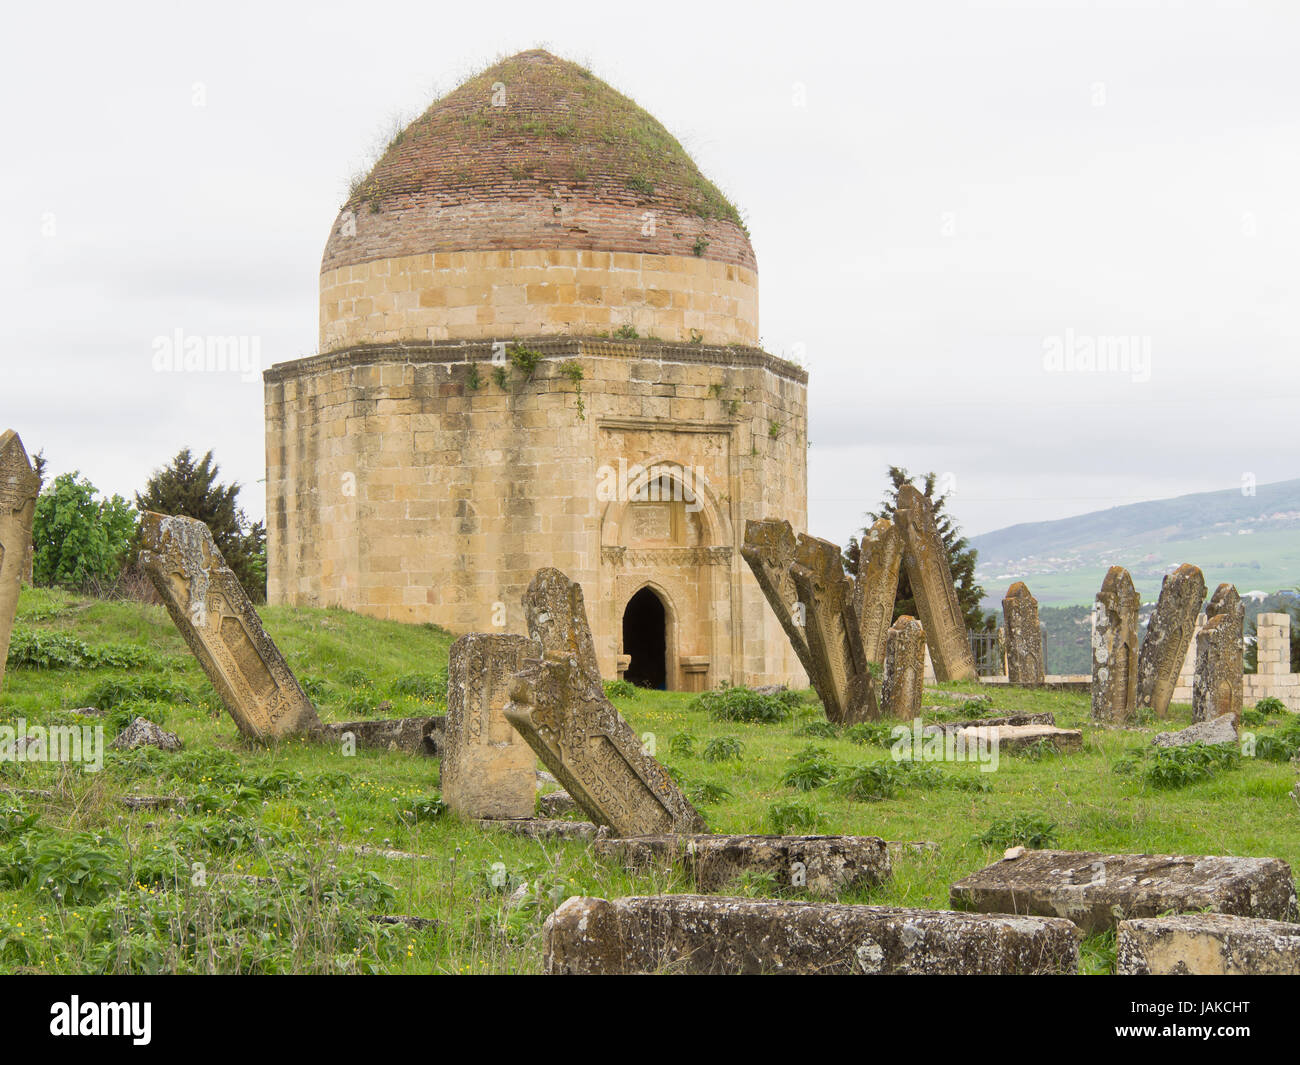 Yeddi Gumbez, Shirvan Domes or the Shamakhi mausoleum, tombs of Shirvan Dynasty rulers on a hillside outside the - Stock Image